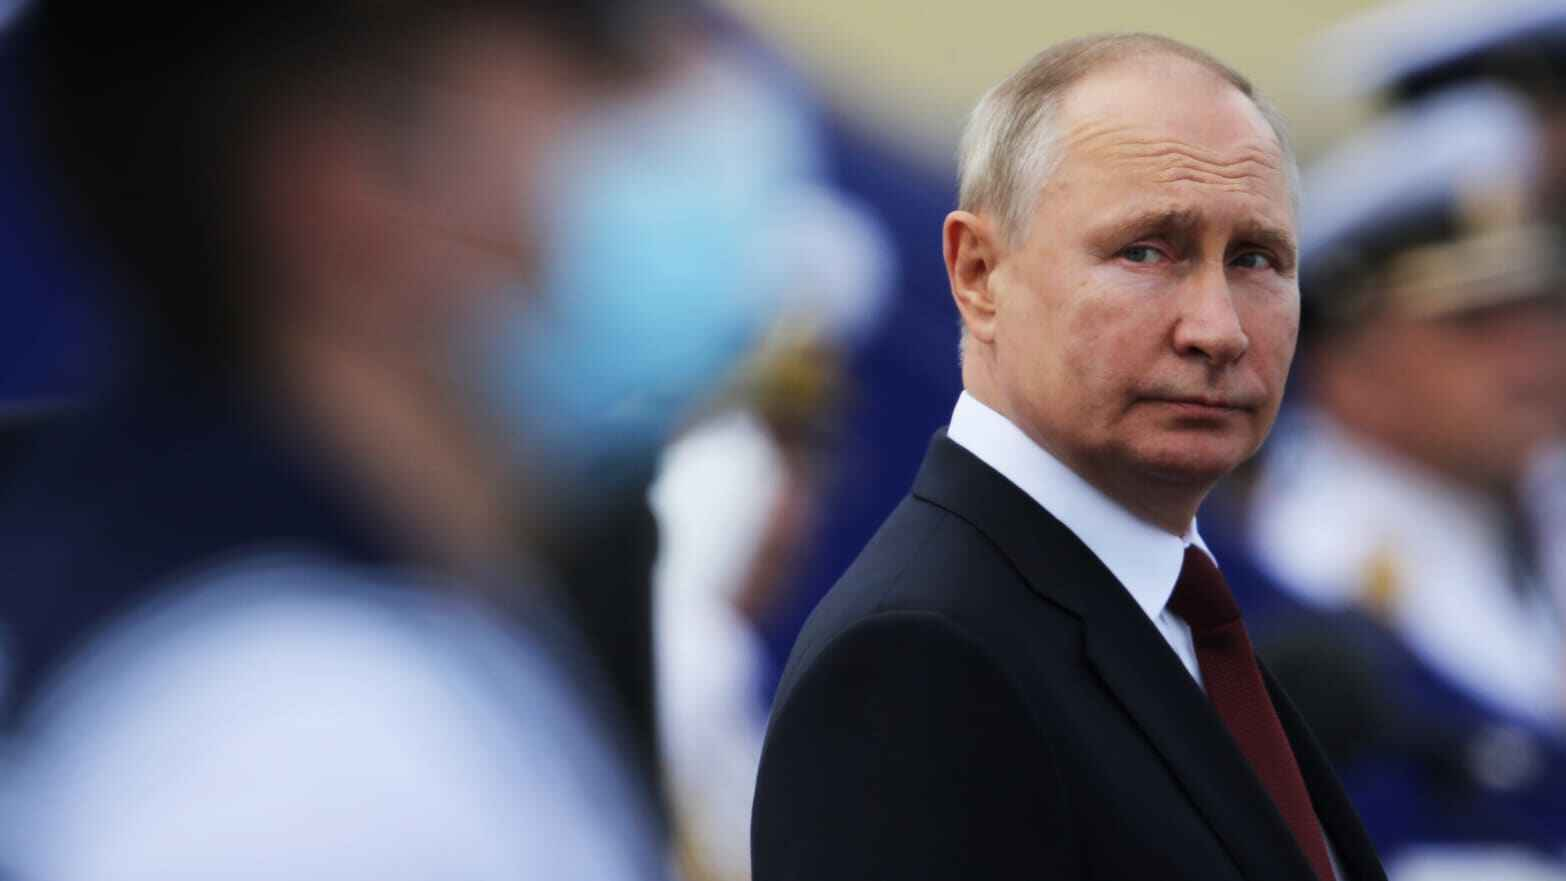 Putin continues his work as usual under self-isolating conditions